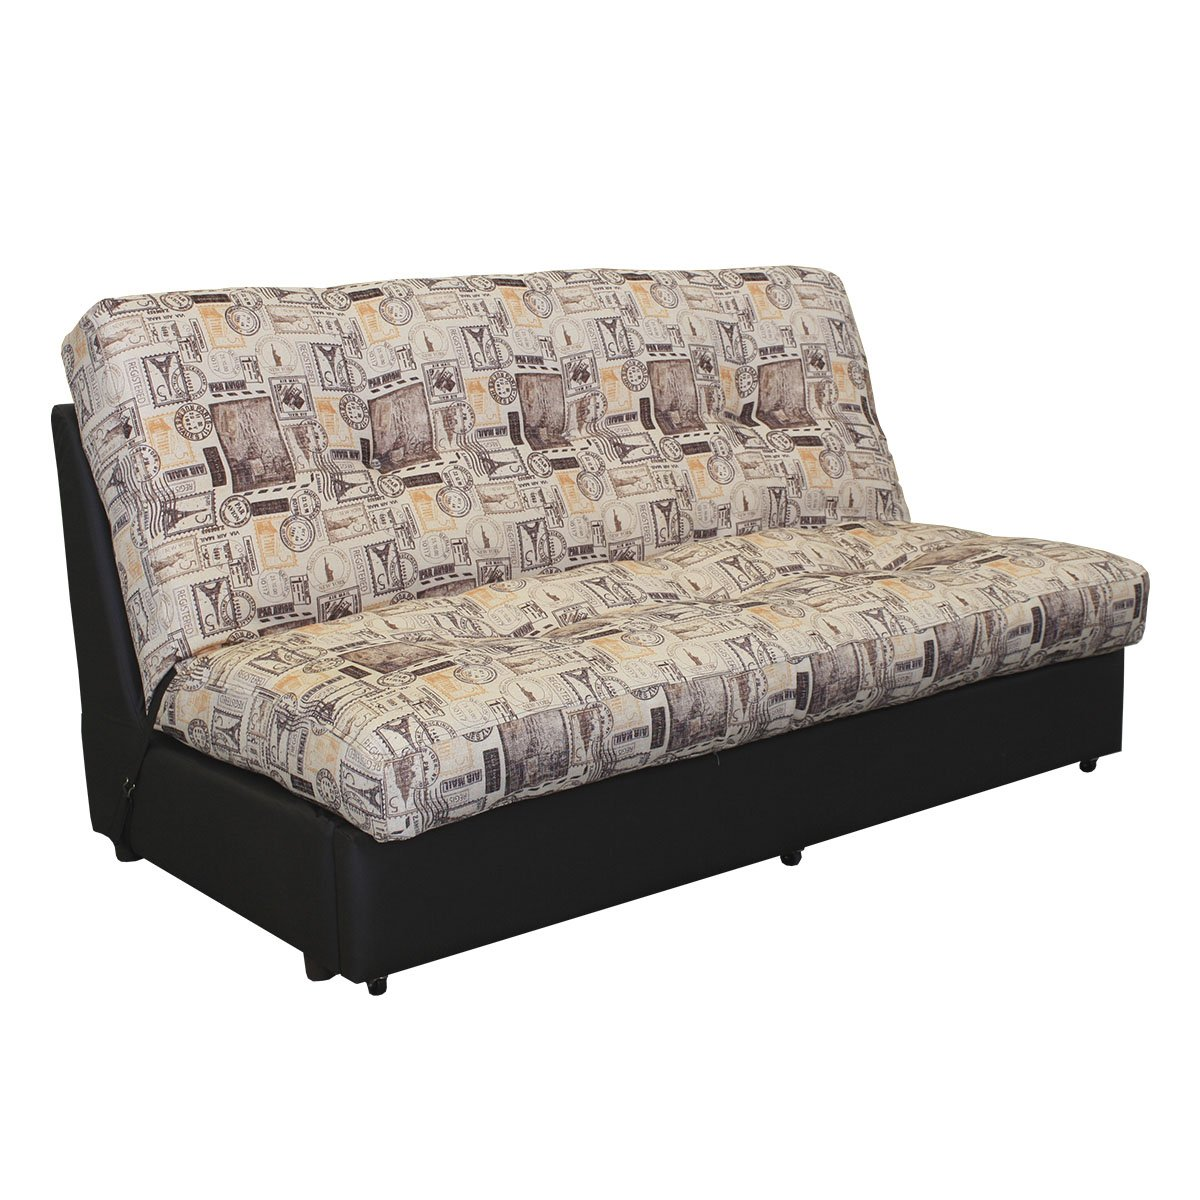 Sofa cama sofas camas sofa brownsvilleclaimhelp thesofa for Sofa cama 1 plaza mercadolibre